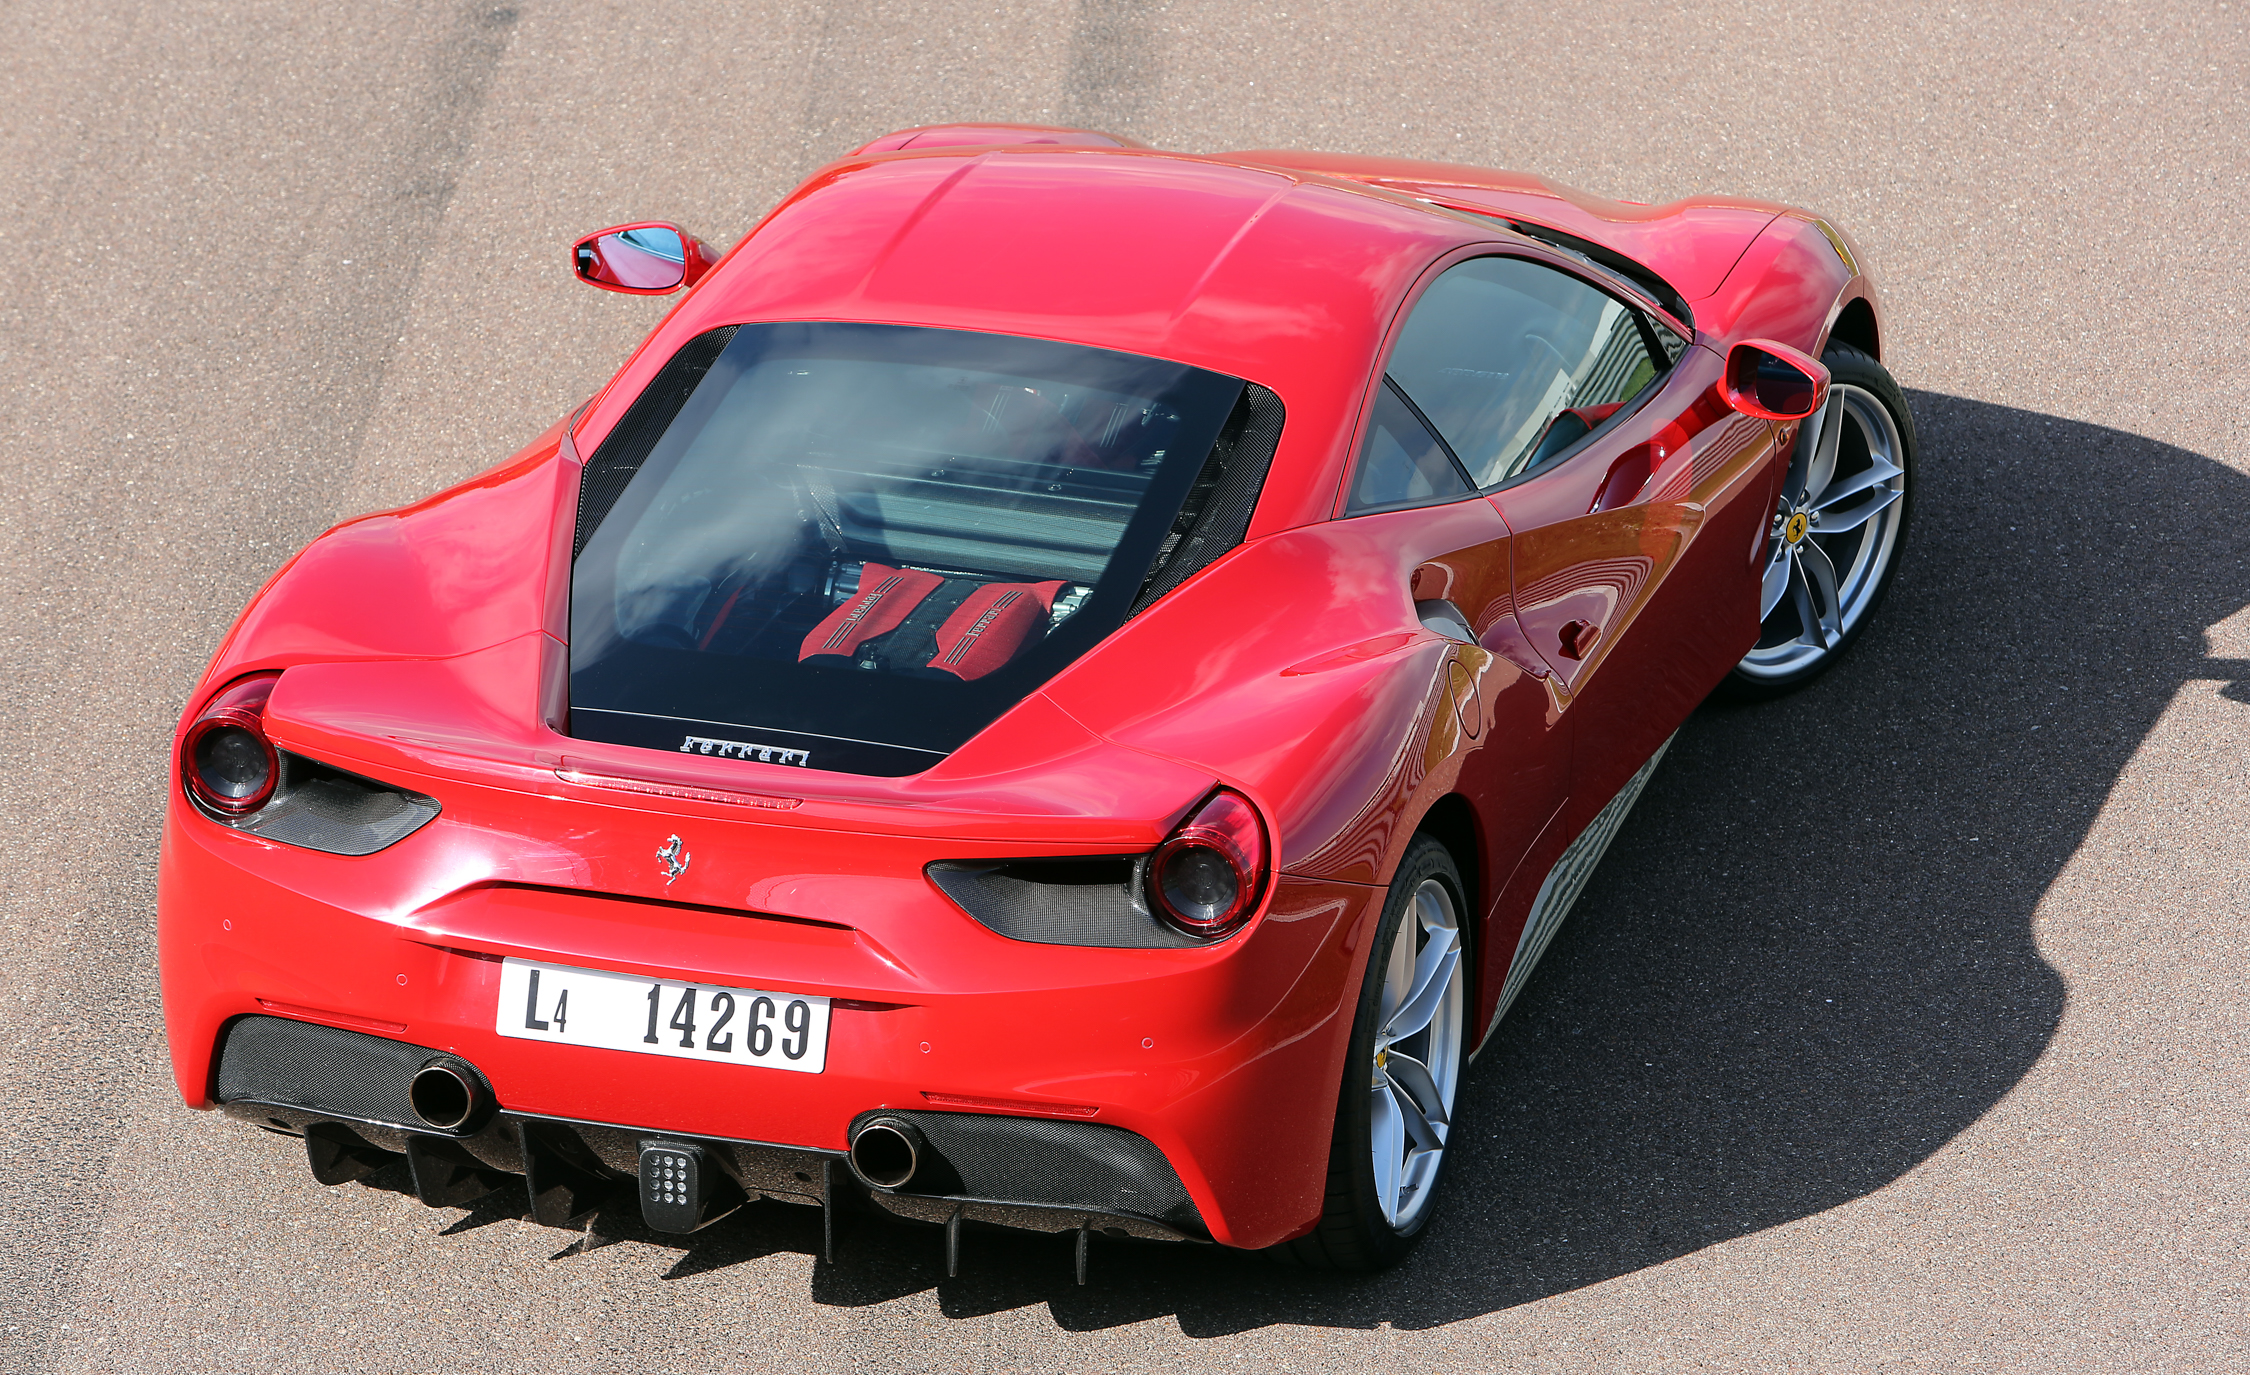 2016 Ferrari 488GTB Exterior Full Top and Rear